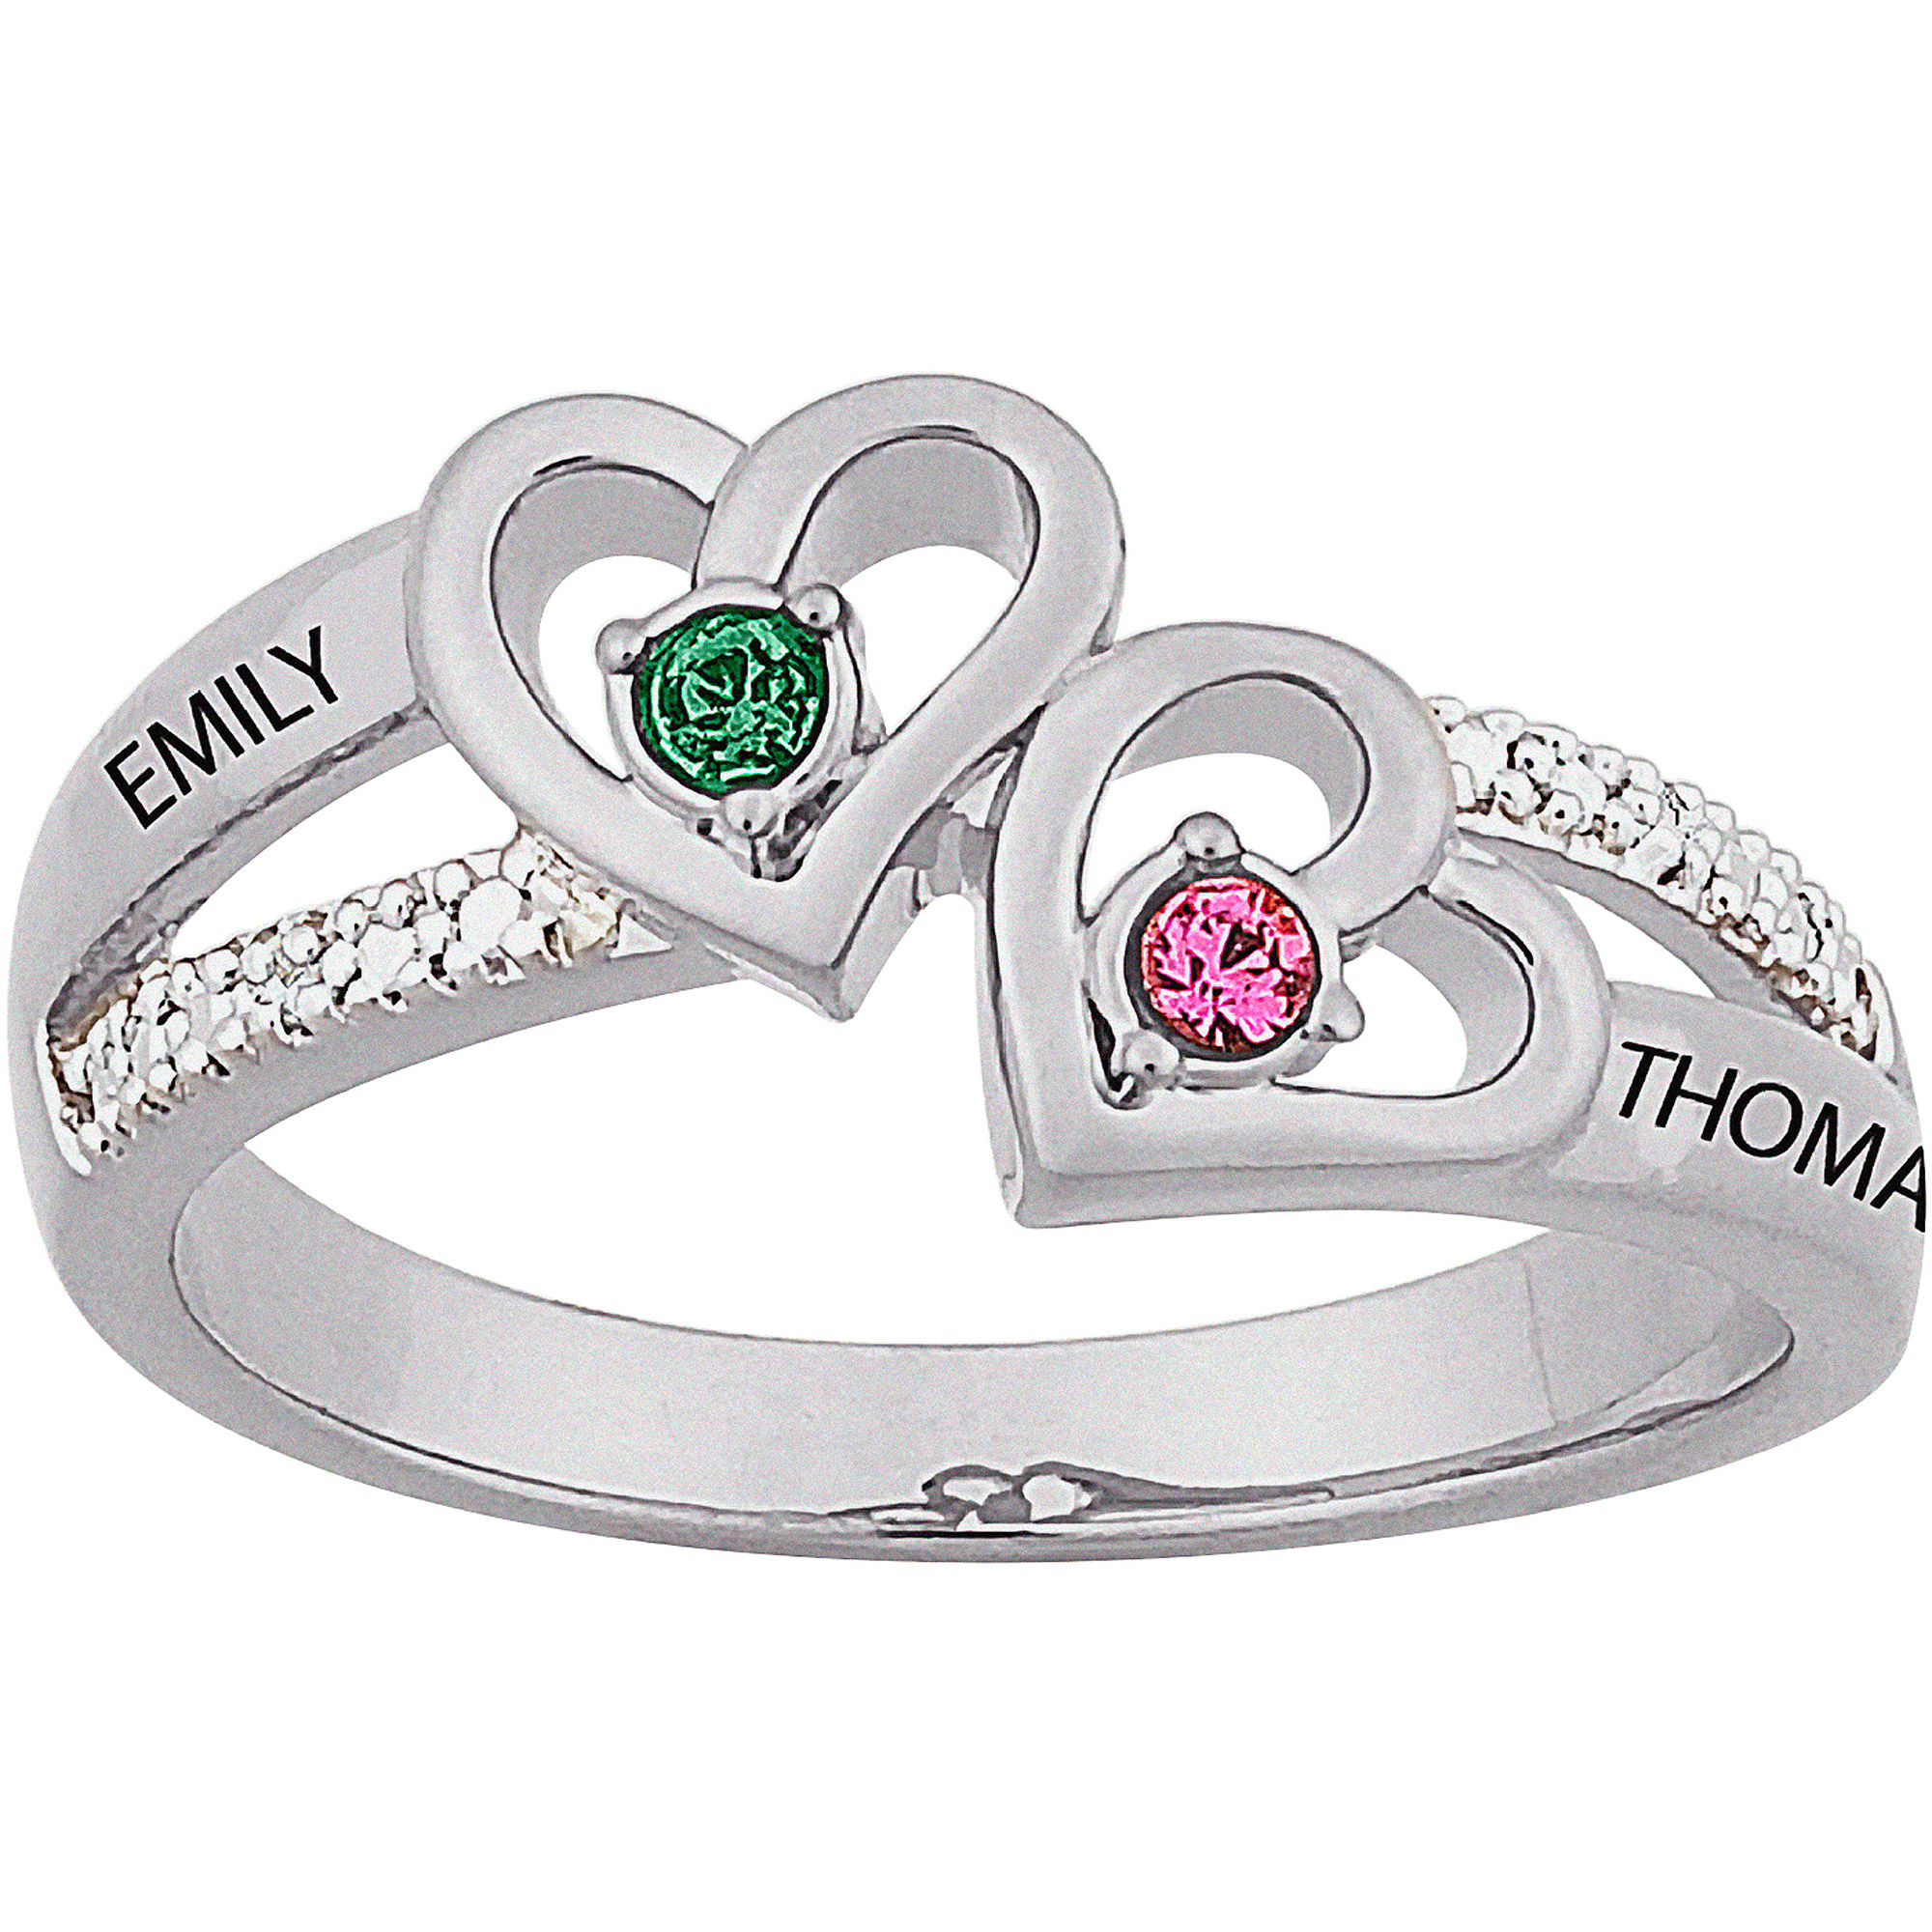 Personalized Sterling Silver Couples Heart Birthstone & Name